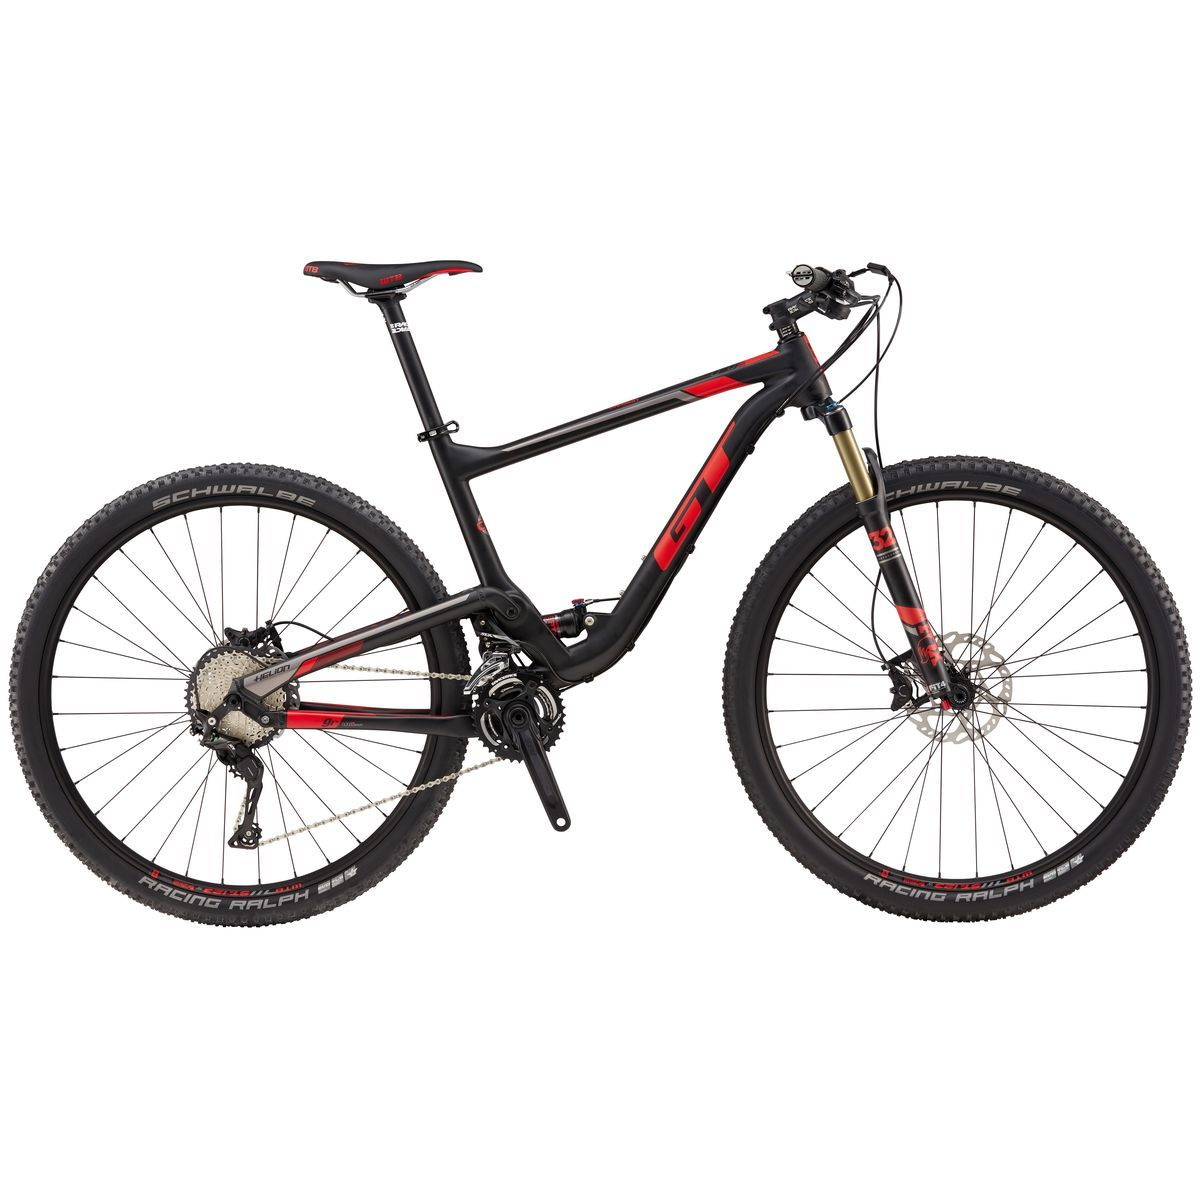 GT Helion Carbon Expert 9R Complete Mountain Bike 2017 RaRed L ...